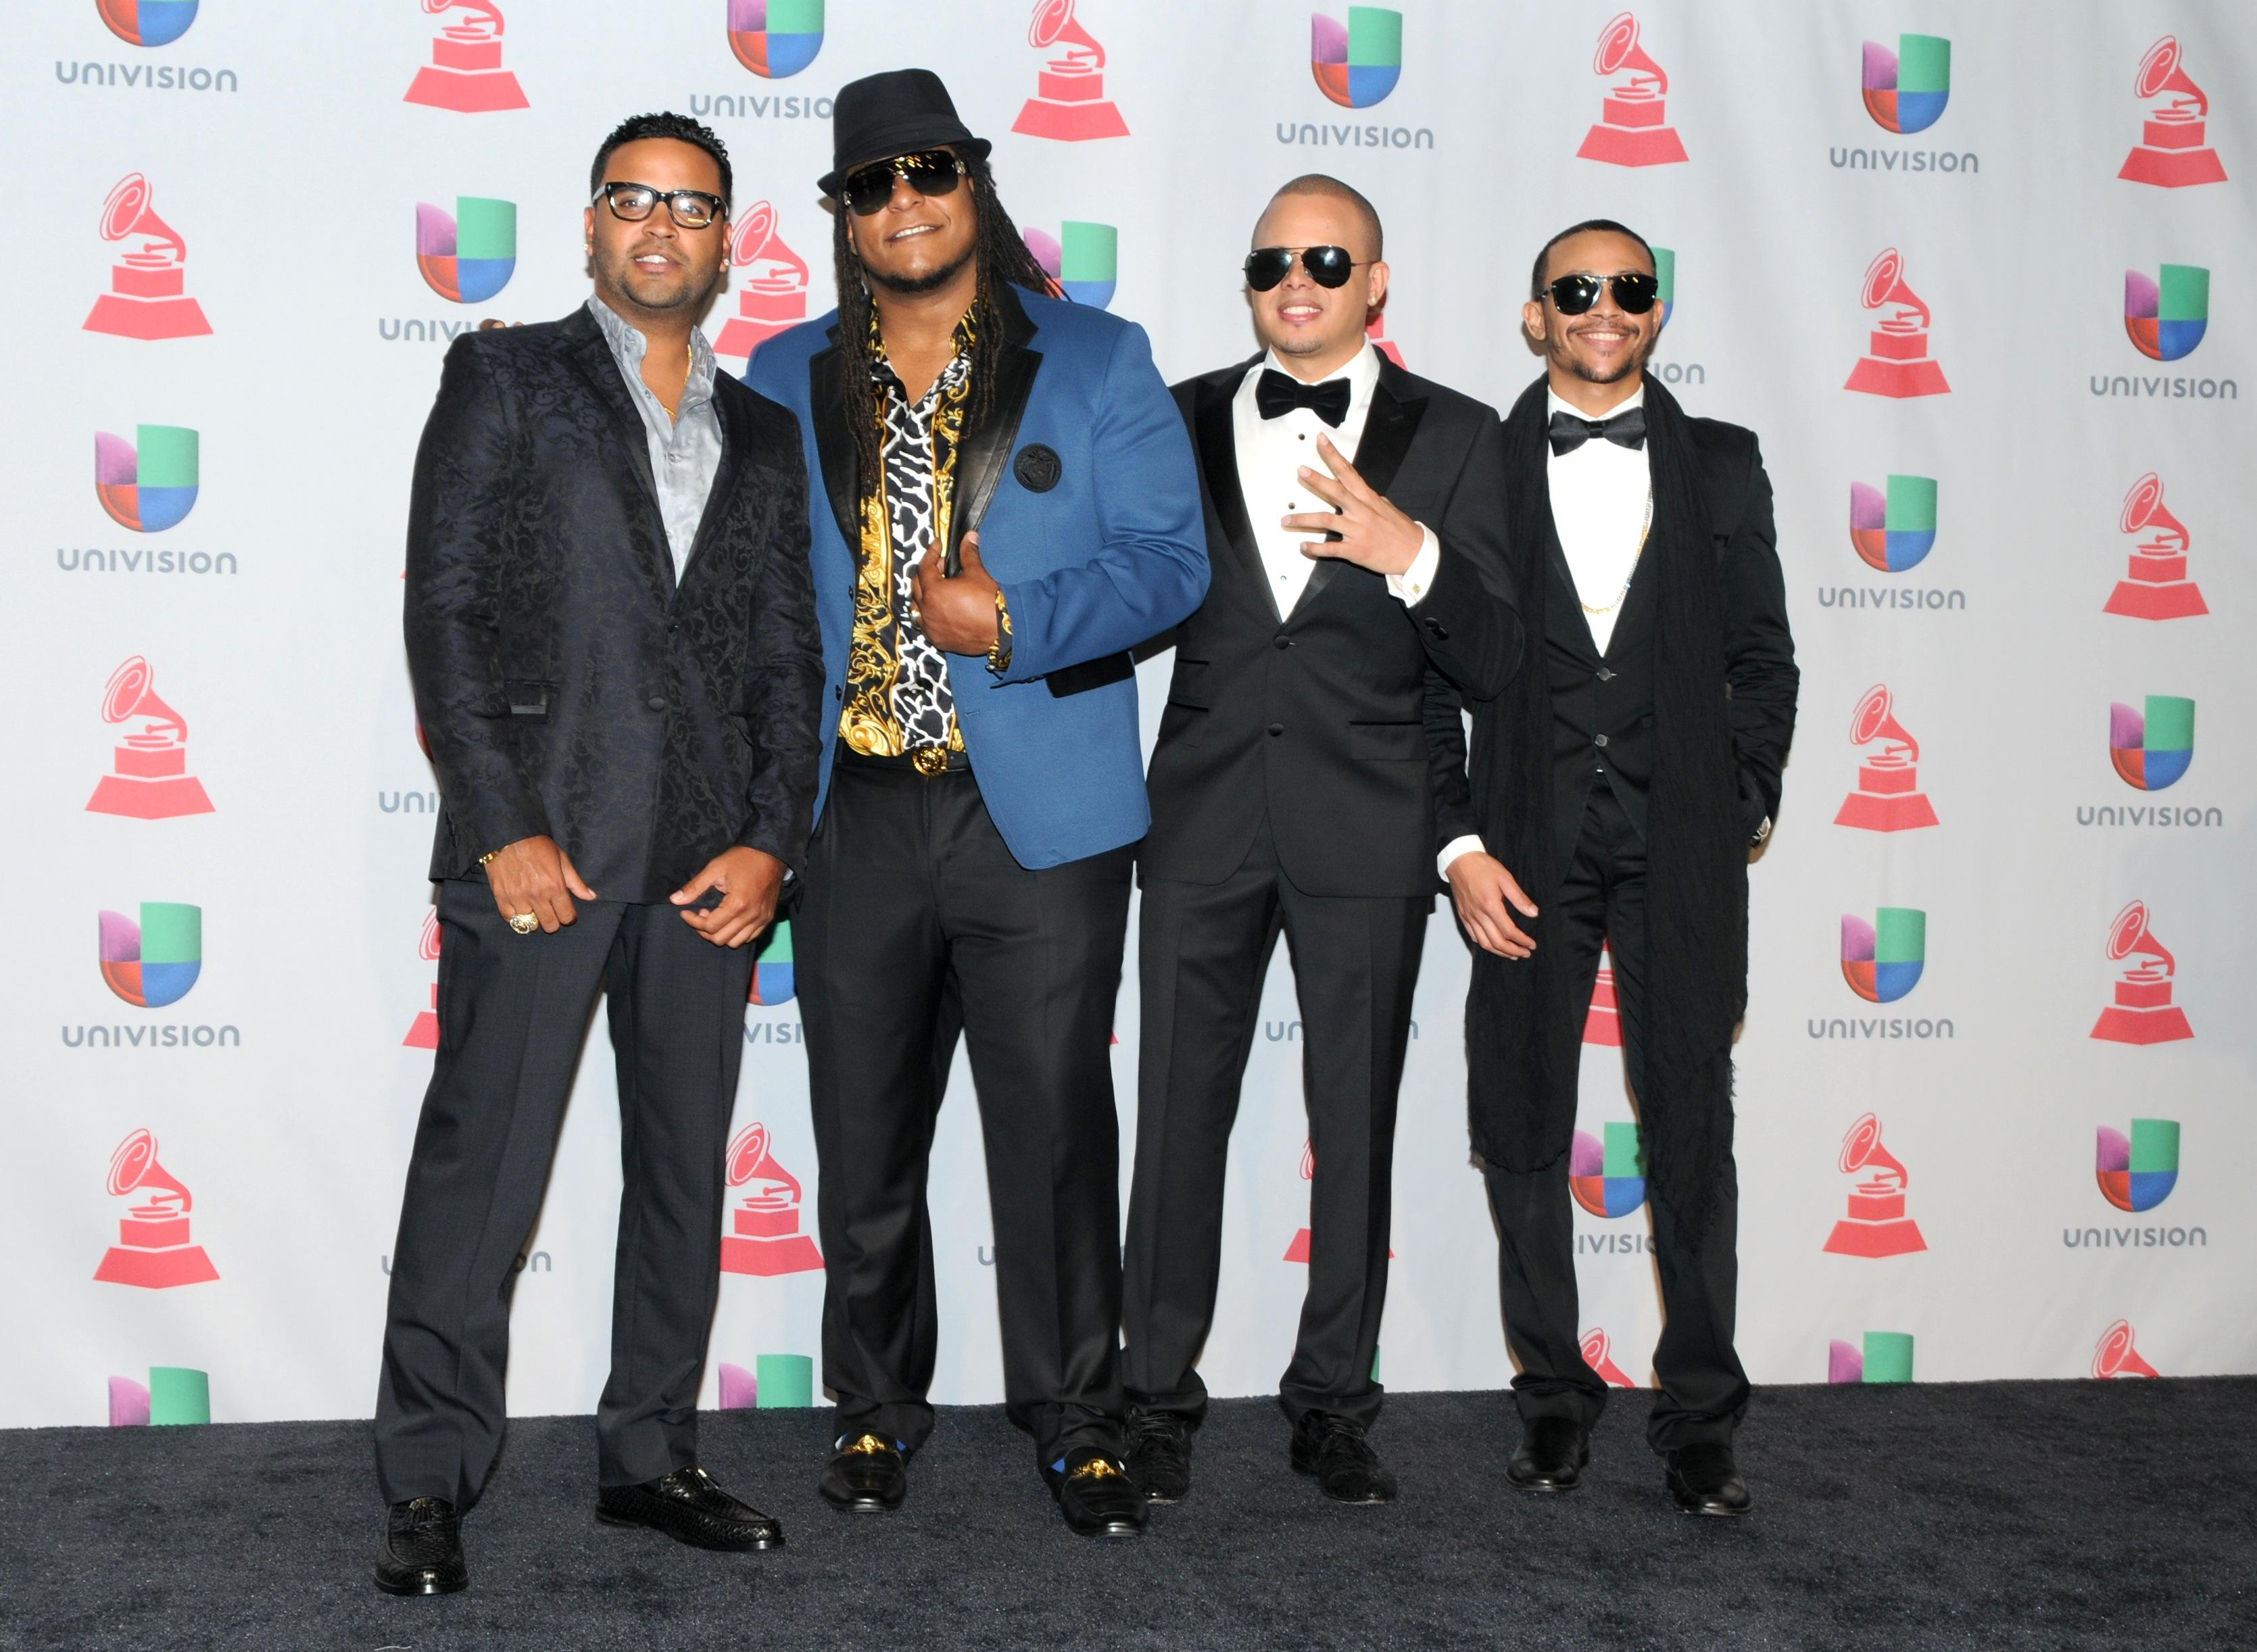 The 14th Annual Latin GRAMMY Awards - Press Room